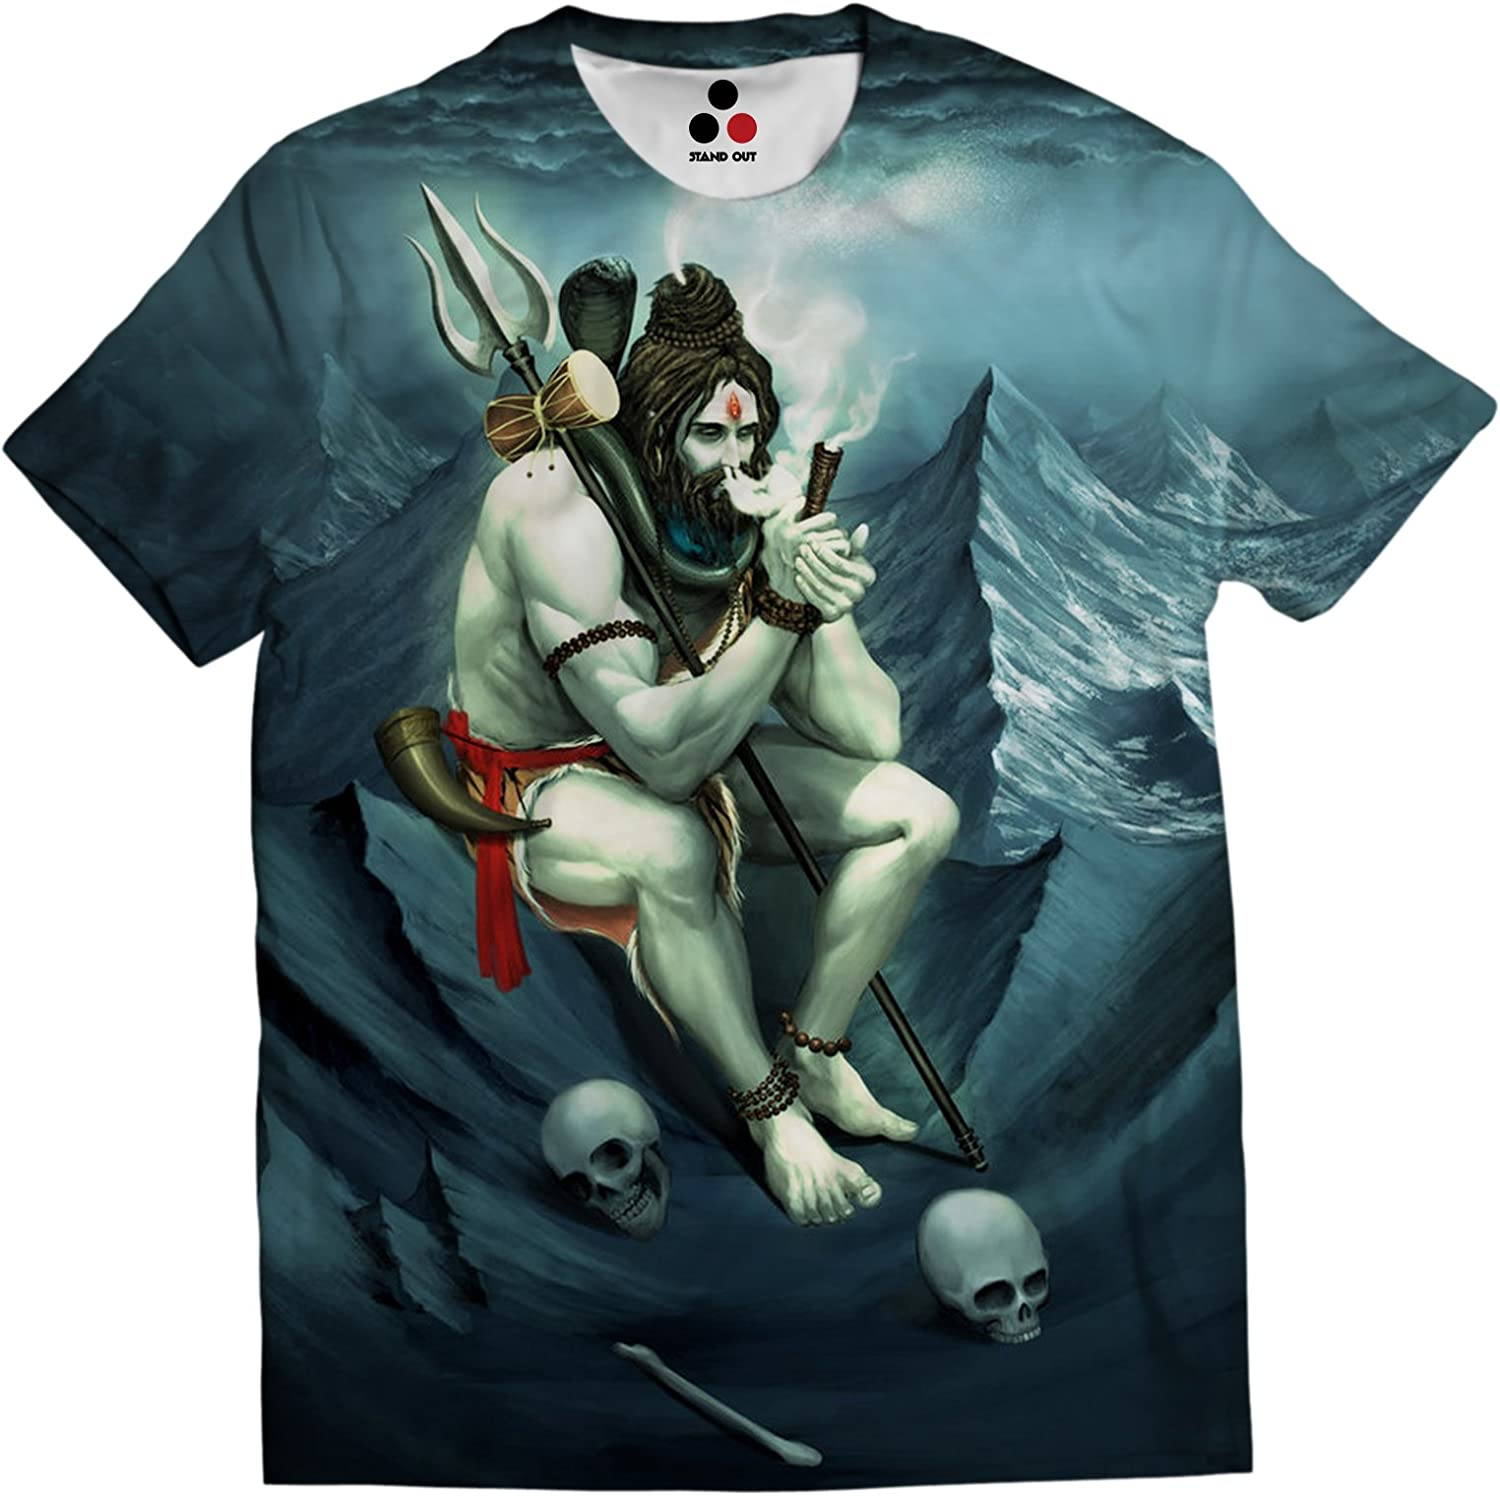 Stand Out Lord Shiva Smoking Weed From Chillum Full Coverage All Over Printed Adiyogi Isha Blue Color Unisex T Shirt Amazon Com